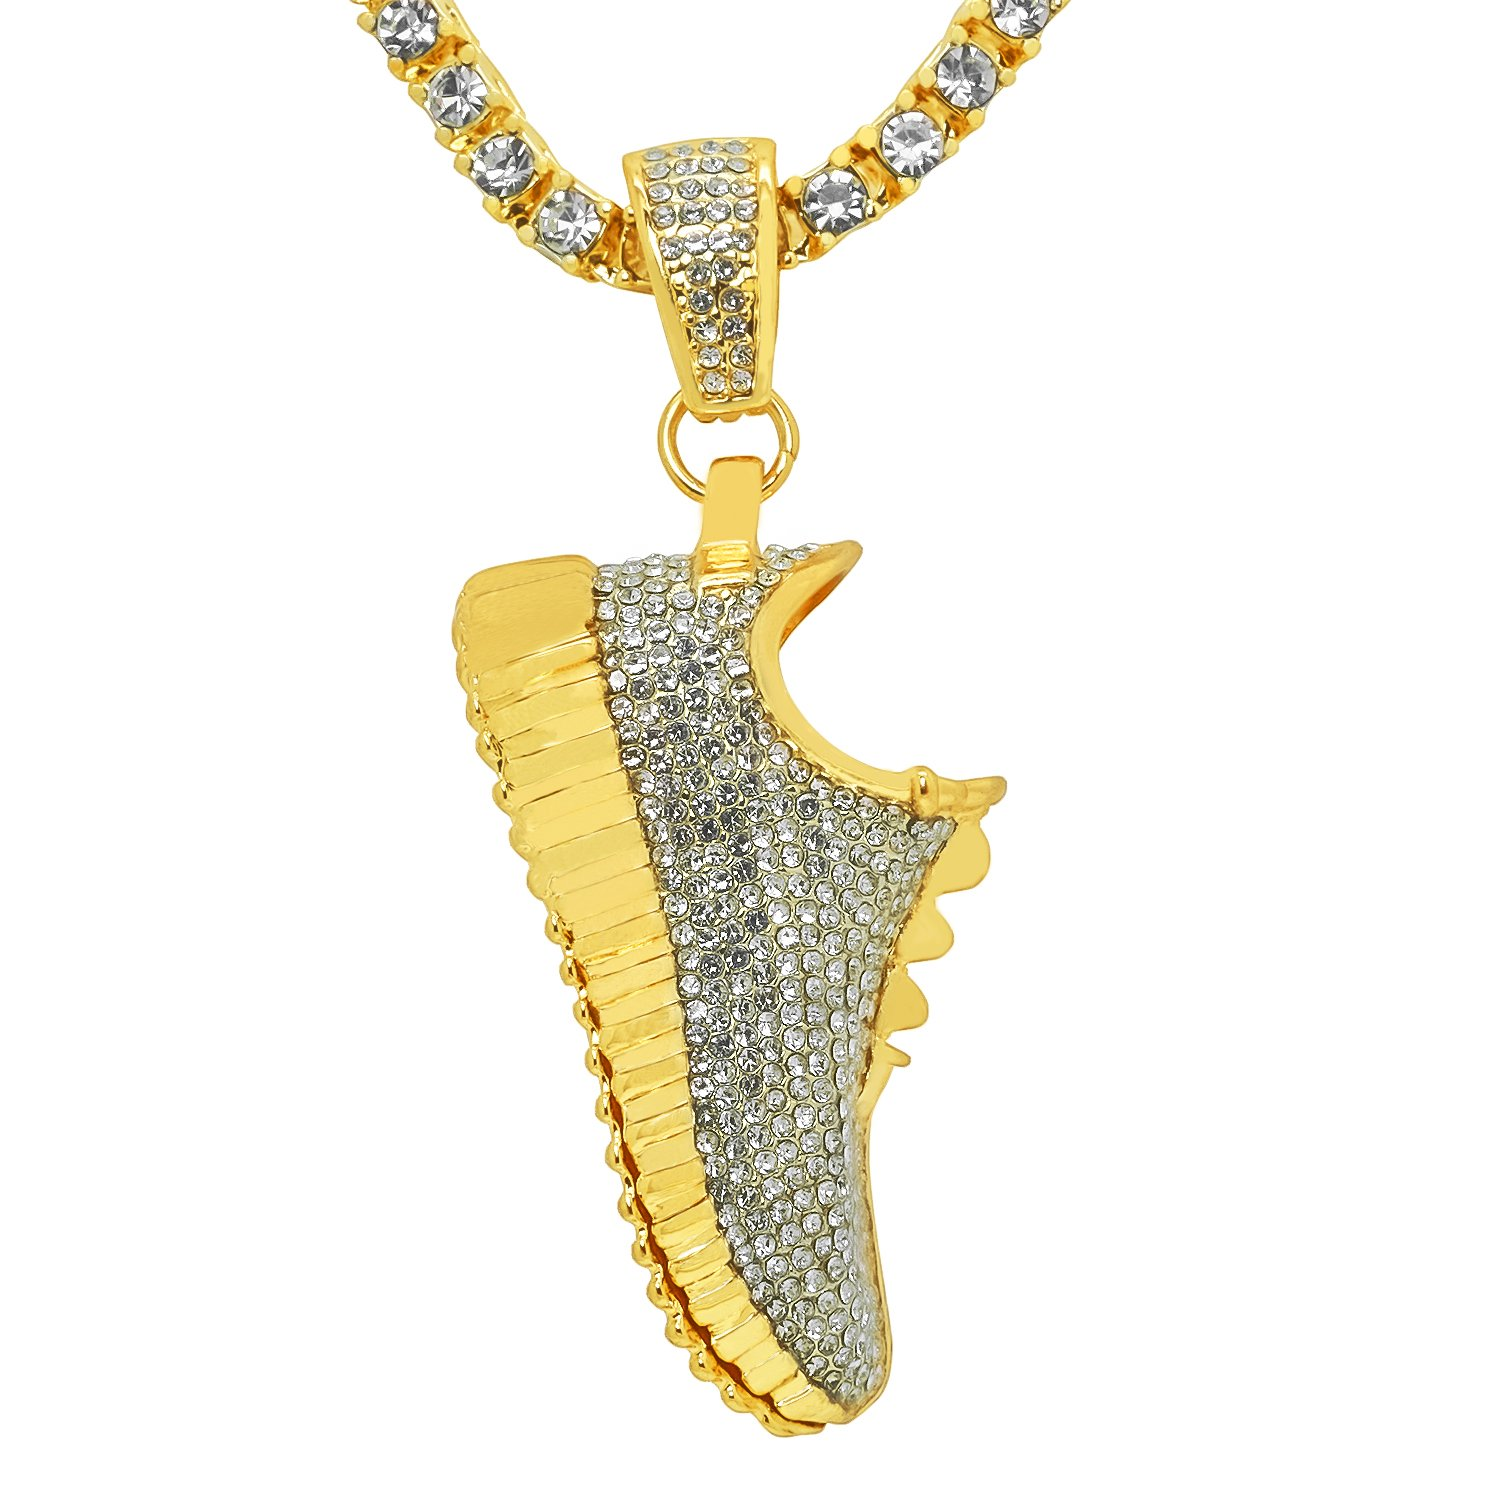 Yellow Gold-Tone Iced Out Hip Hop Bling Sneaker Shoe Pendant 1 Row Stones Tennis Chain 20 Necklace Choker Chain